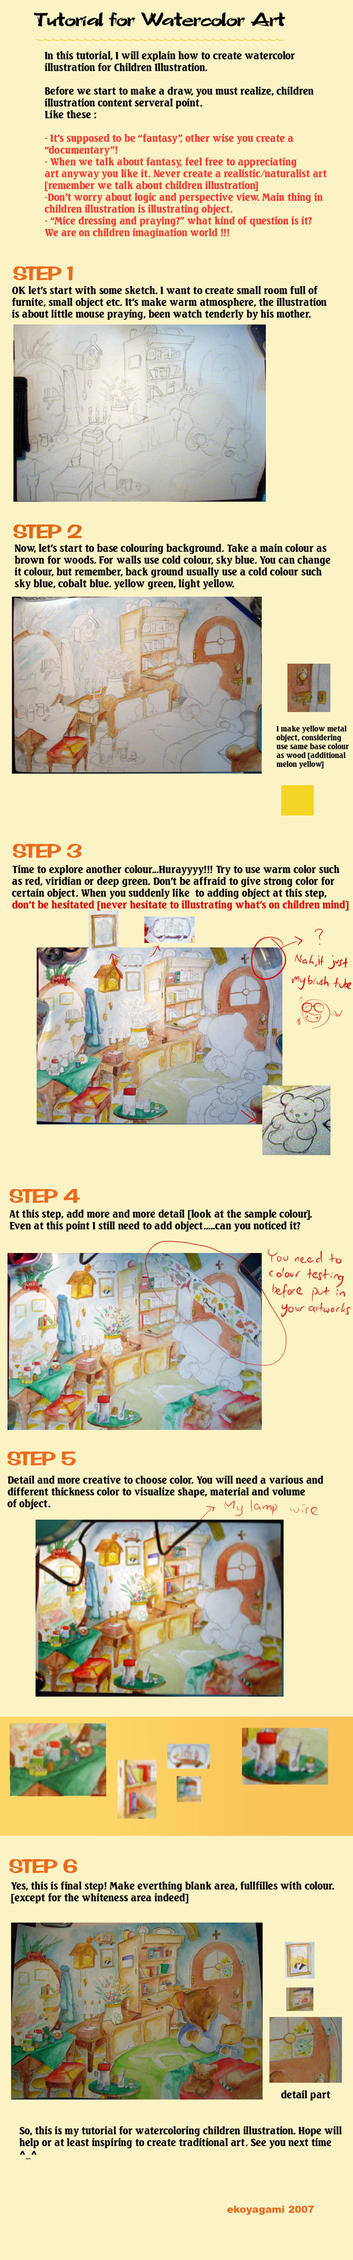 tutorial for watercolor by ekoyagami